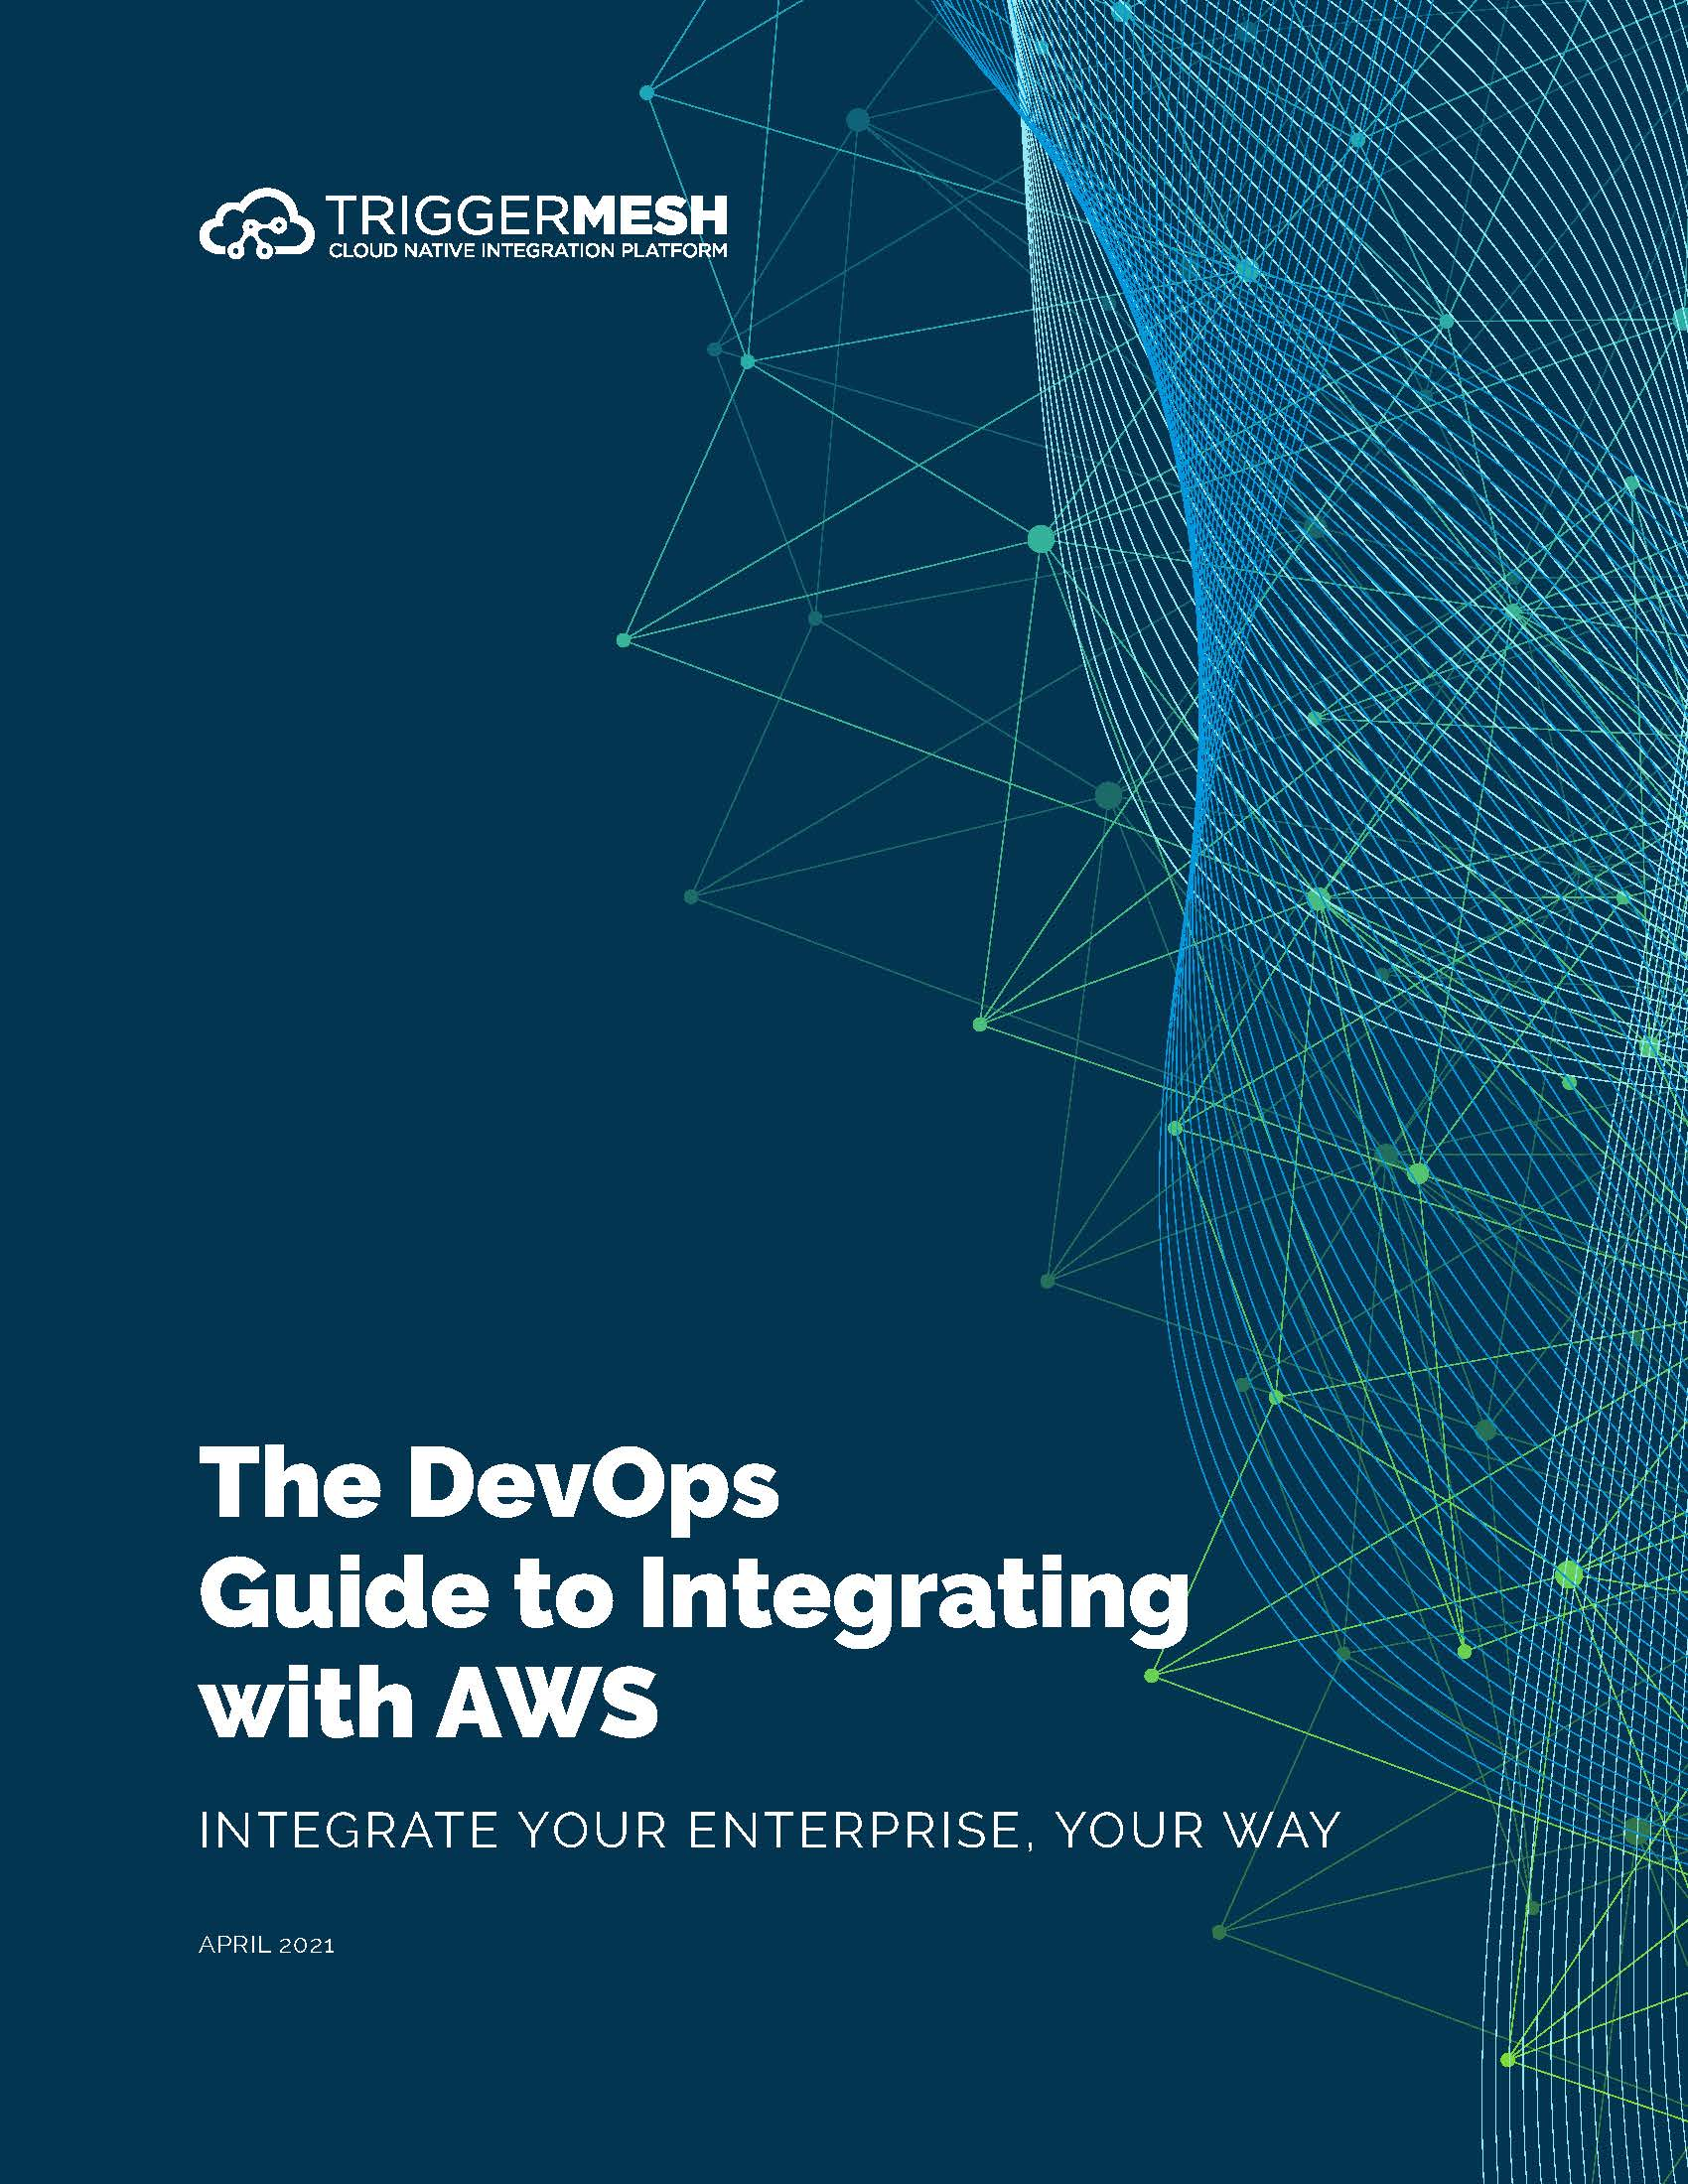 The DevOpsGuide to Integrating with AWS